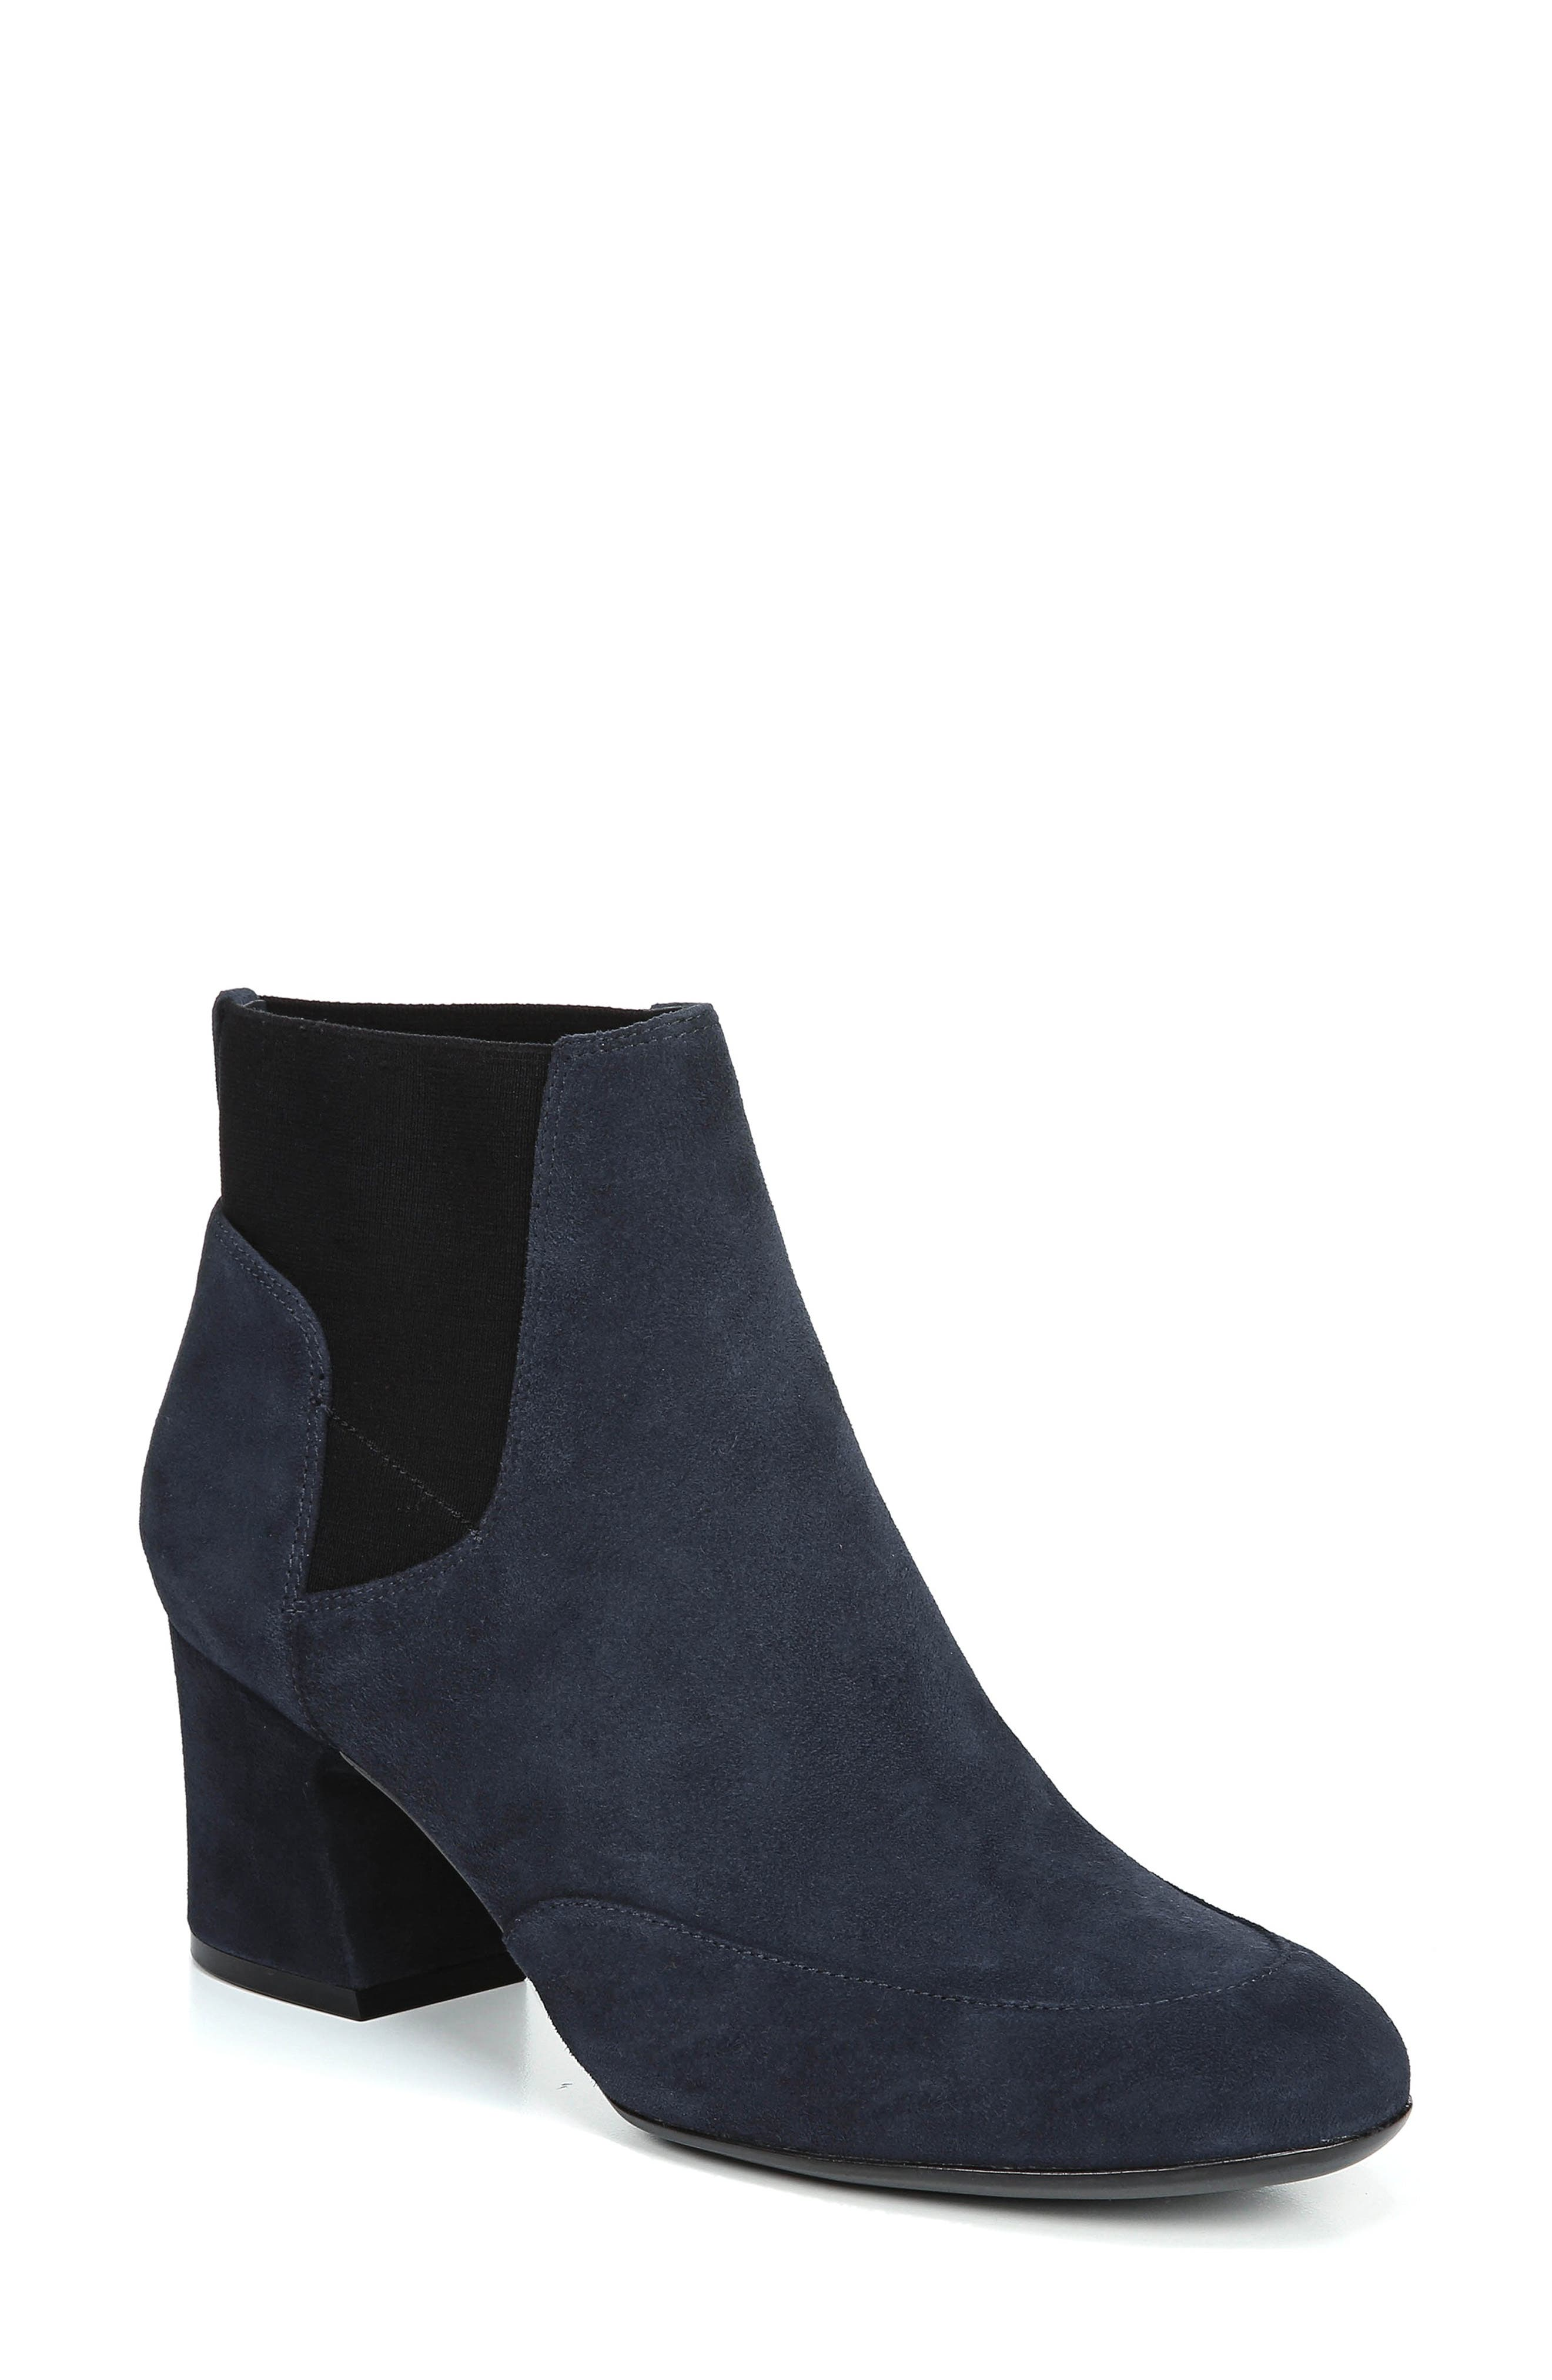 Naturalizer Danica Ankle Bootie- Blue